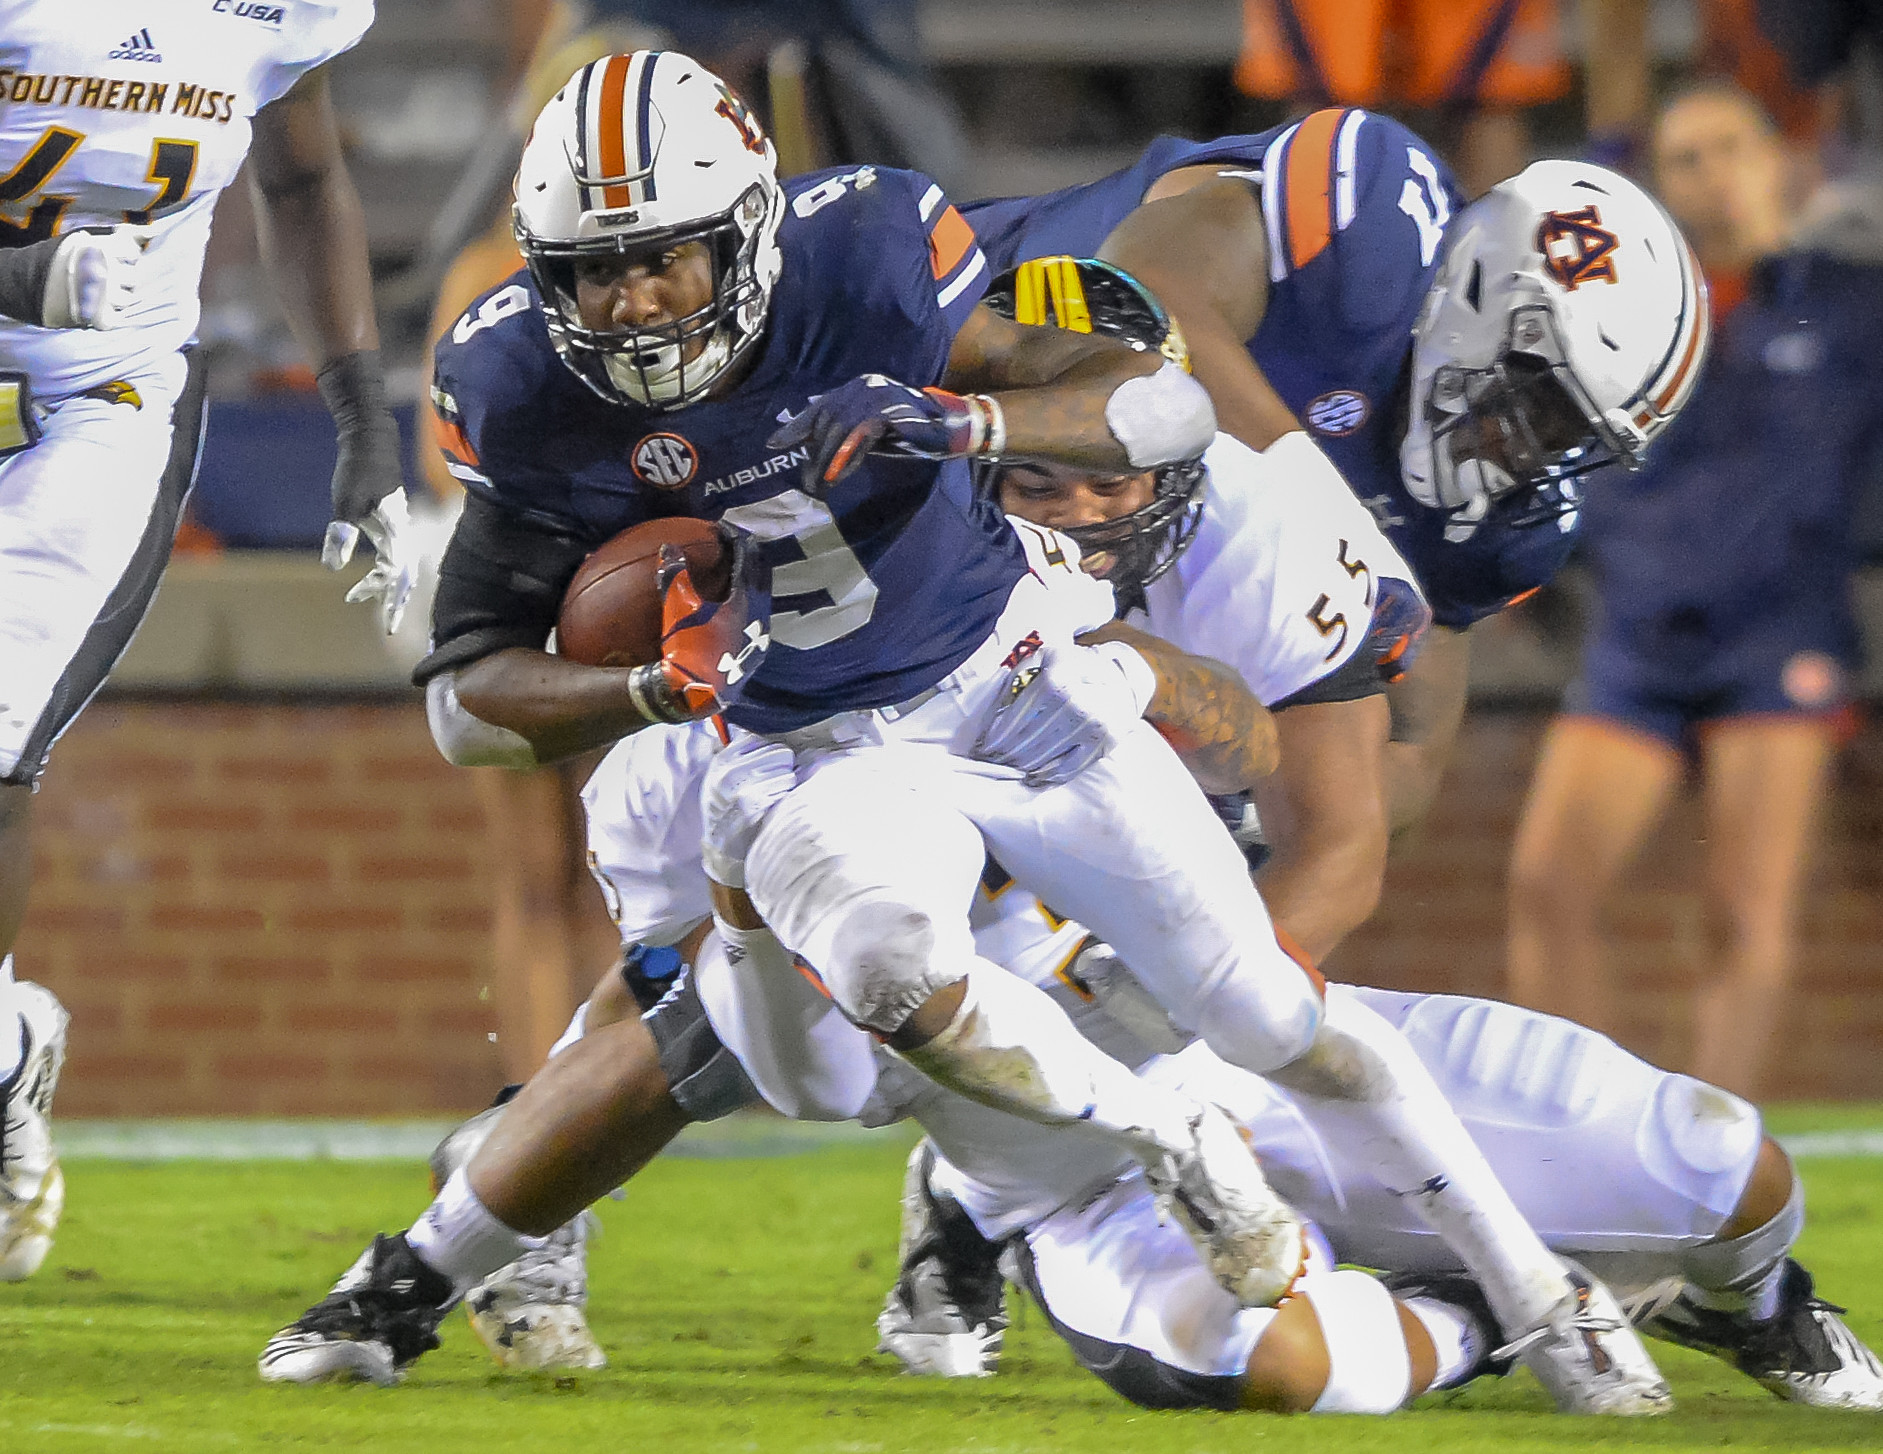 Auburn Tigers running back Kam Martin (9) is brought down during the first half of Saturday's game, at Jordan Hare Stadium in Auburn AL. Daily Mountain Eagle -  Jeff Johnsey